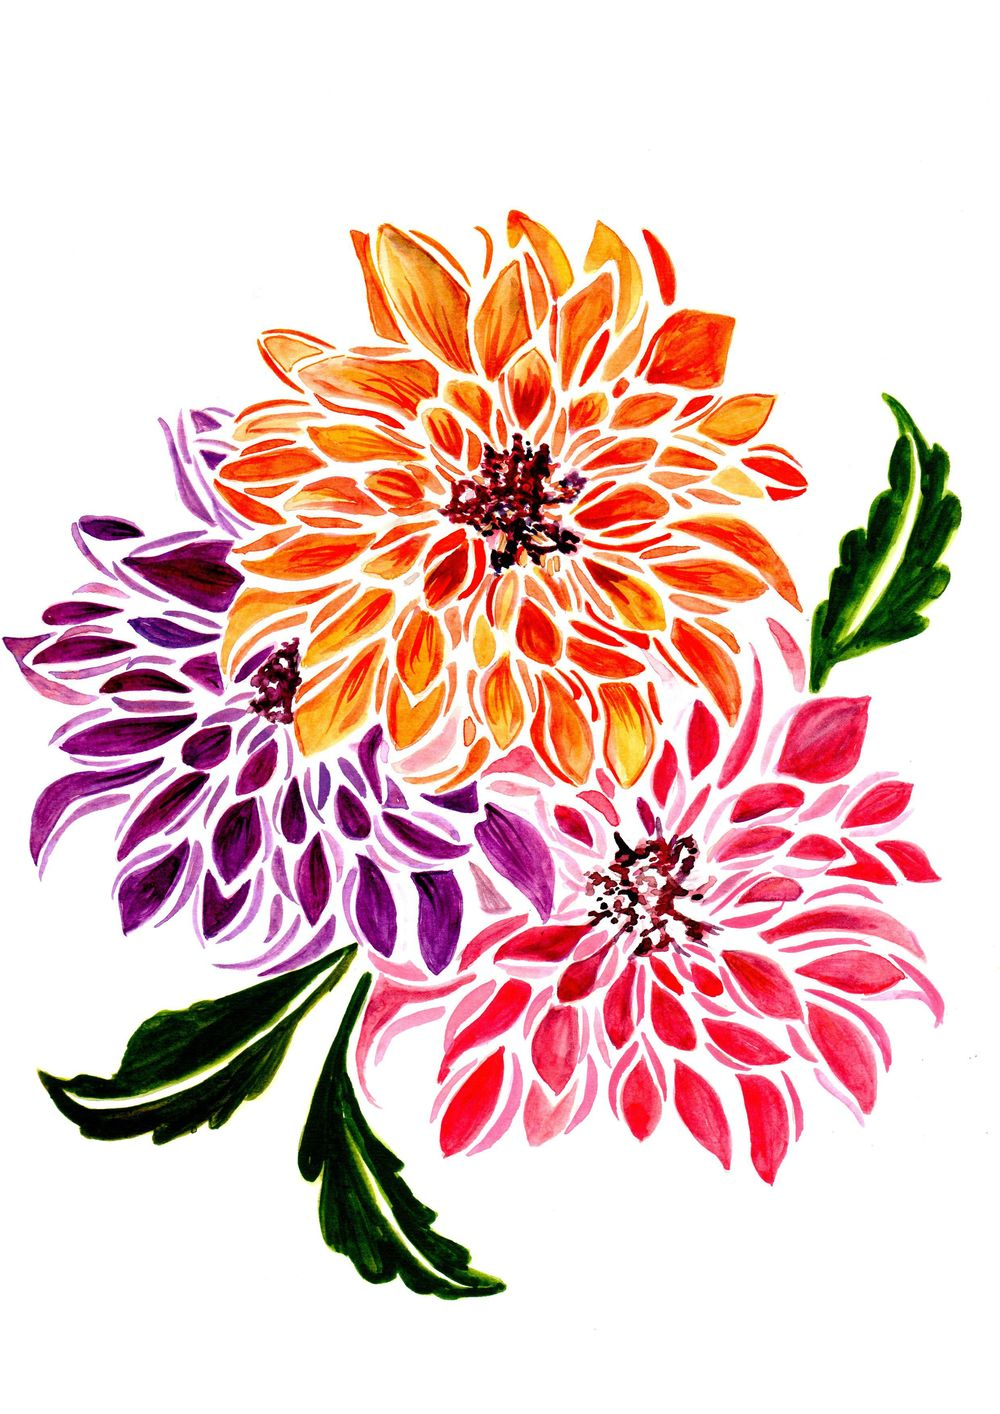 Dahlias Modern Style - image 1 - student project